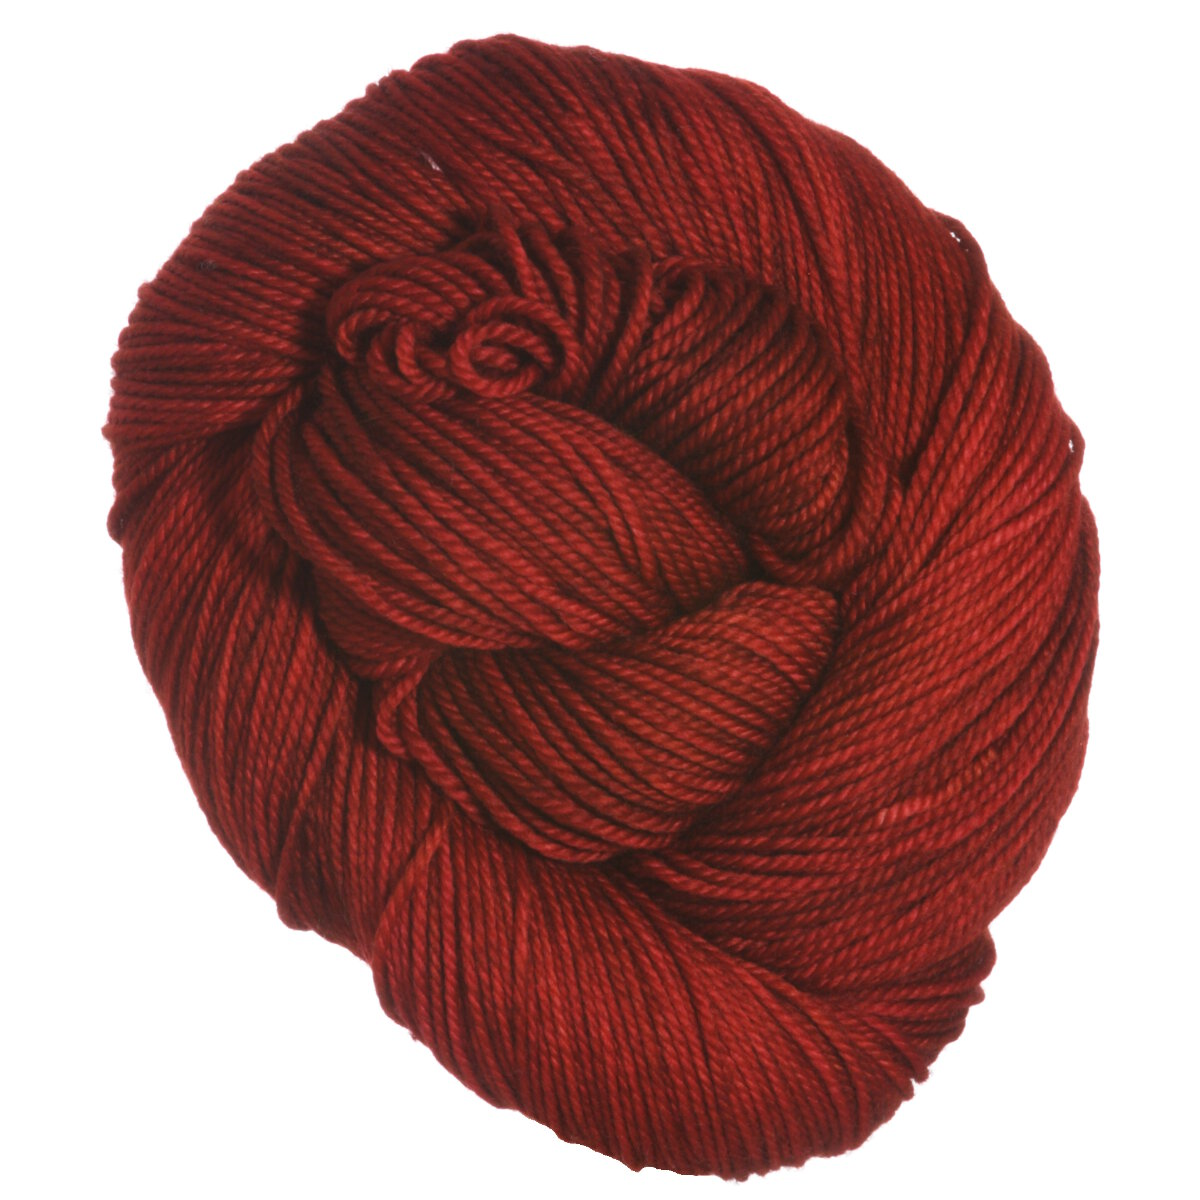 Madelinetosh Tosh Sport Yarn - Robin Red Breast (Discontinued) at Jimmy Beans...